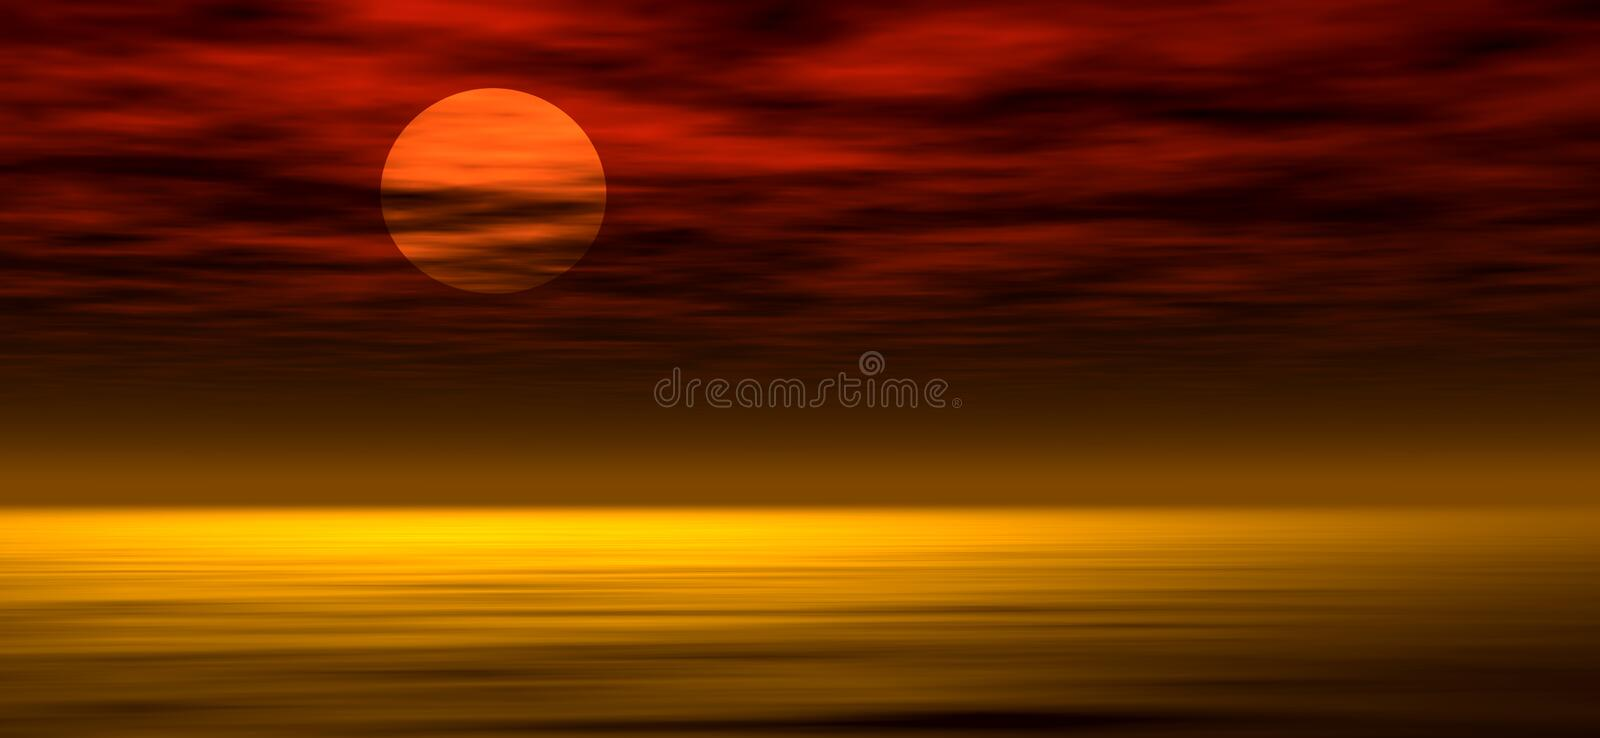 Sunset background 2. Sunset background